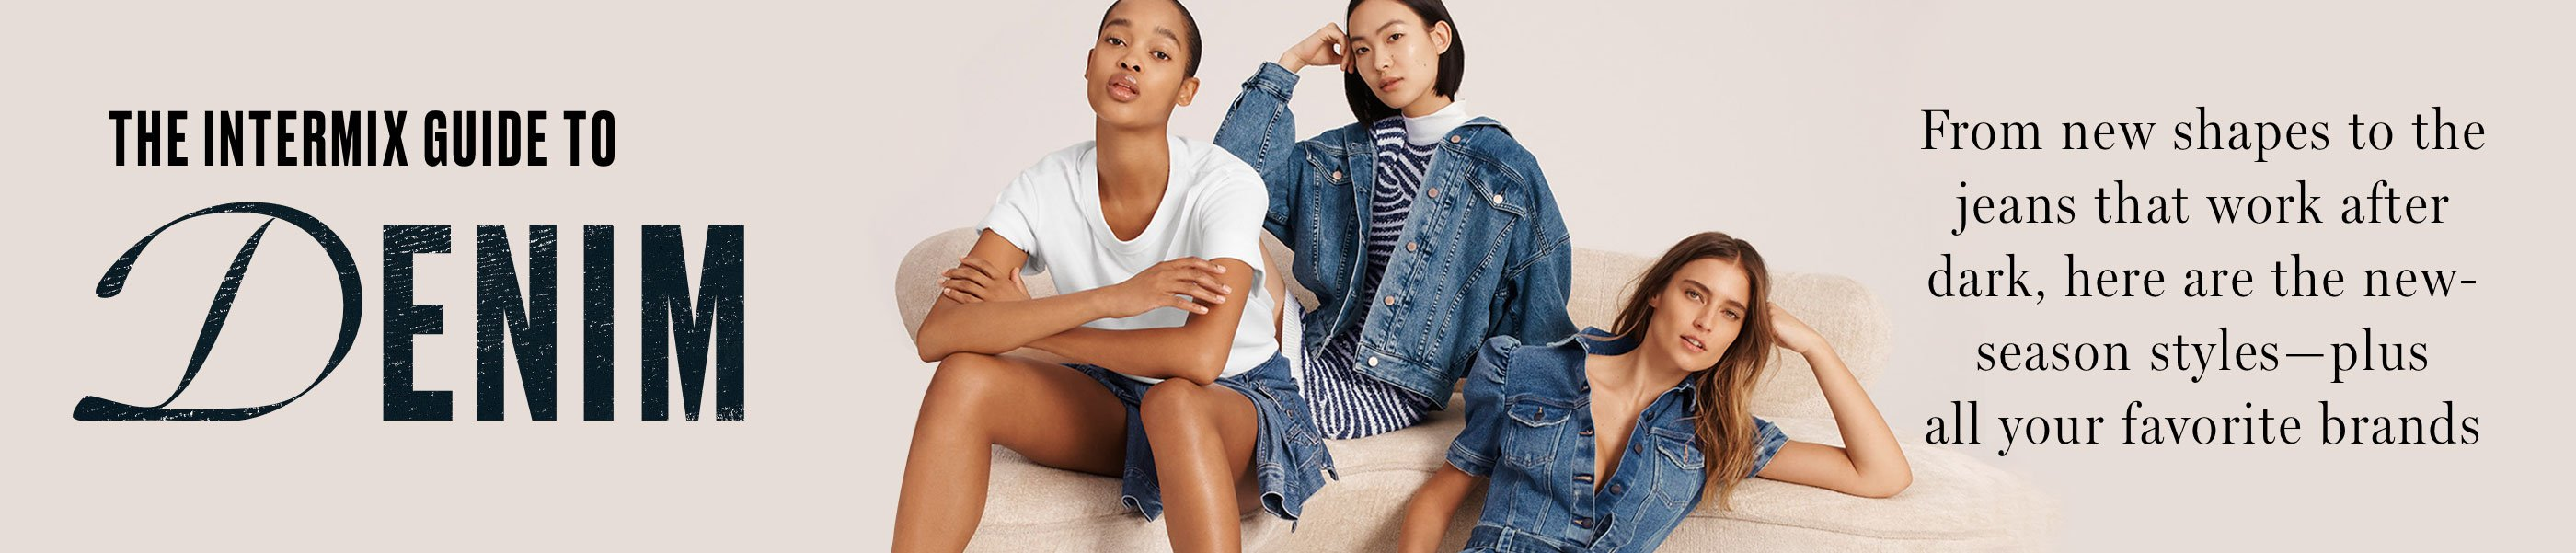 The Intermix Guide To Denim